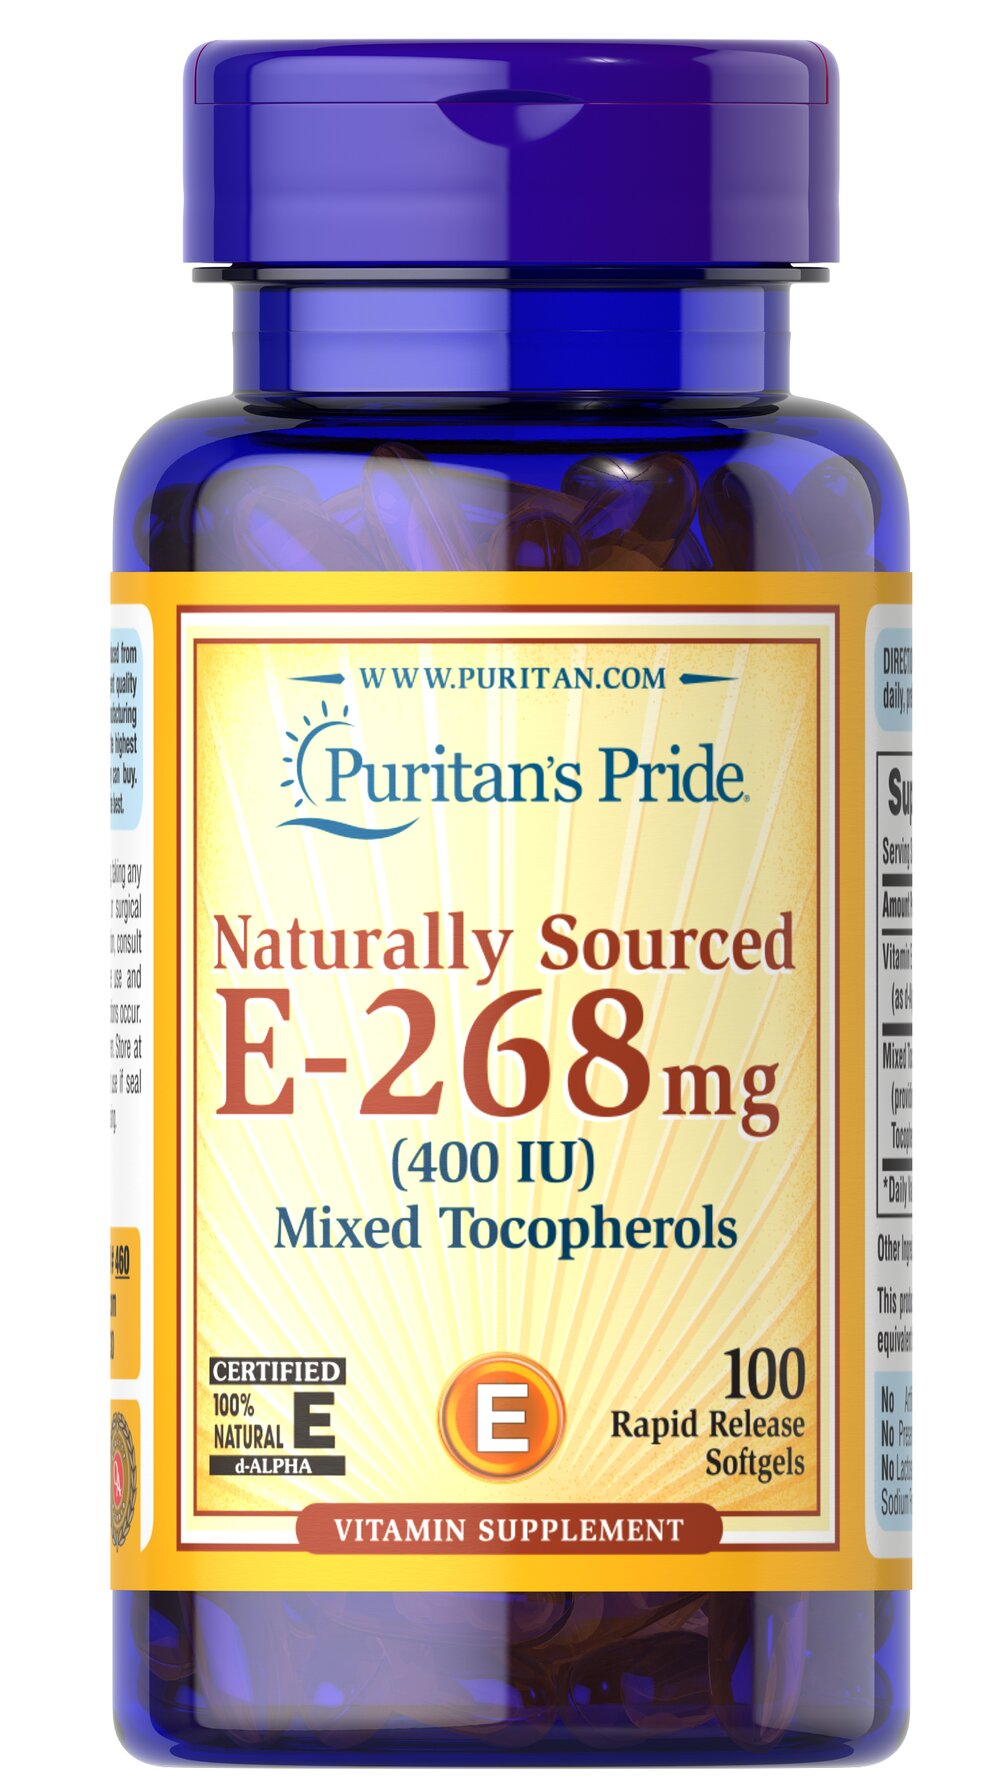 Vitamin E-400 iu Mixed Tocopherols Natural <p><strong>Vitamin E</strong> promotes immune function and helps support cardiovascular health.** Vitamin E is also a powerful <strong>antioxidant</strong> that helps fight cell-damaging free radicals in the body.** Studies have shown that oxidative stress caused by free radicals may contribute to the premature aging of cells.**</p> 100 Softgels 400 IU $20.99